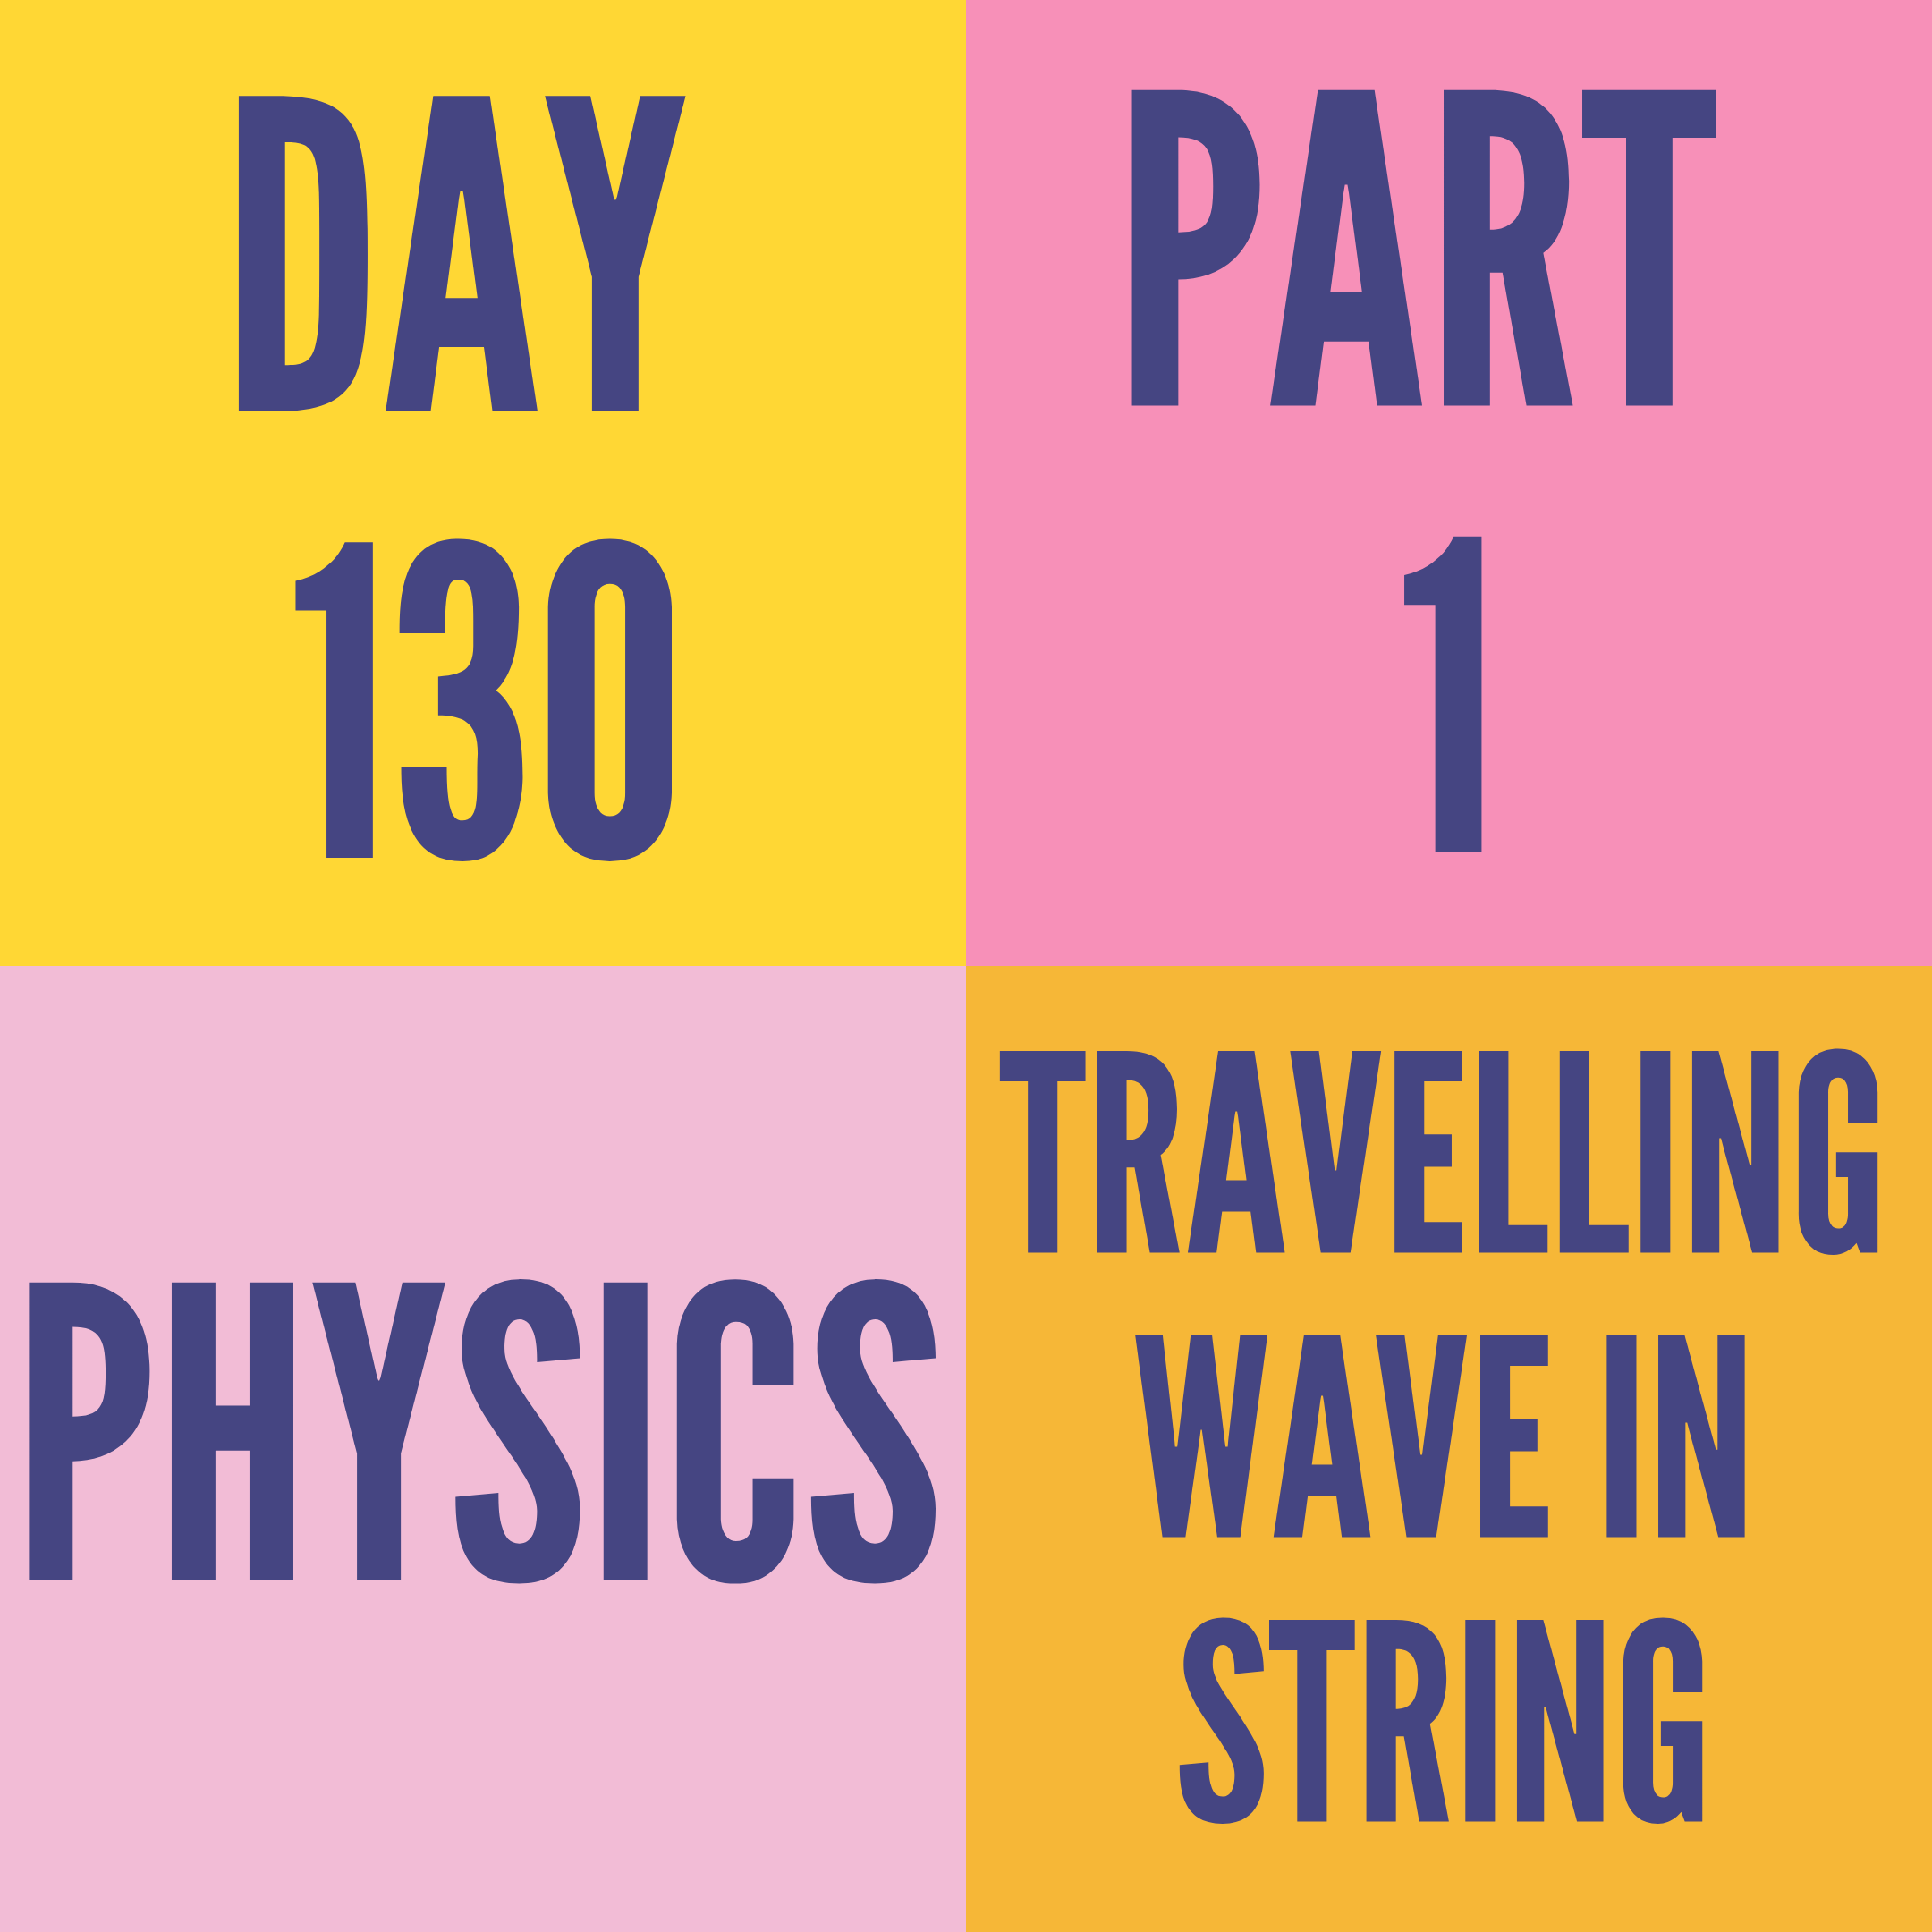 DAY-130 PART-1 TRAVELLING WAVE IN STRING